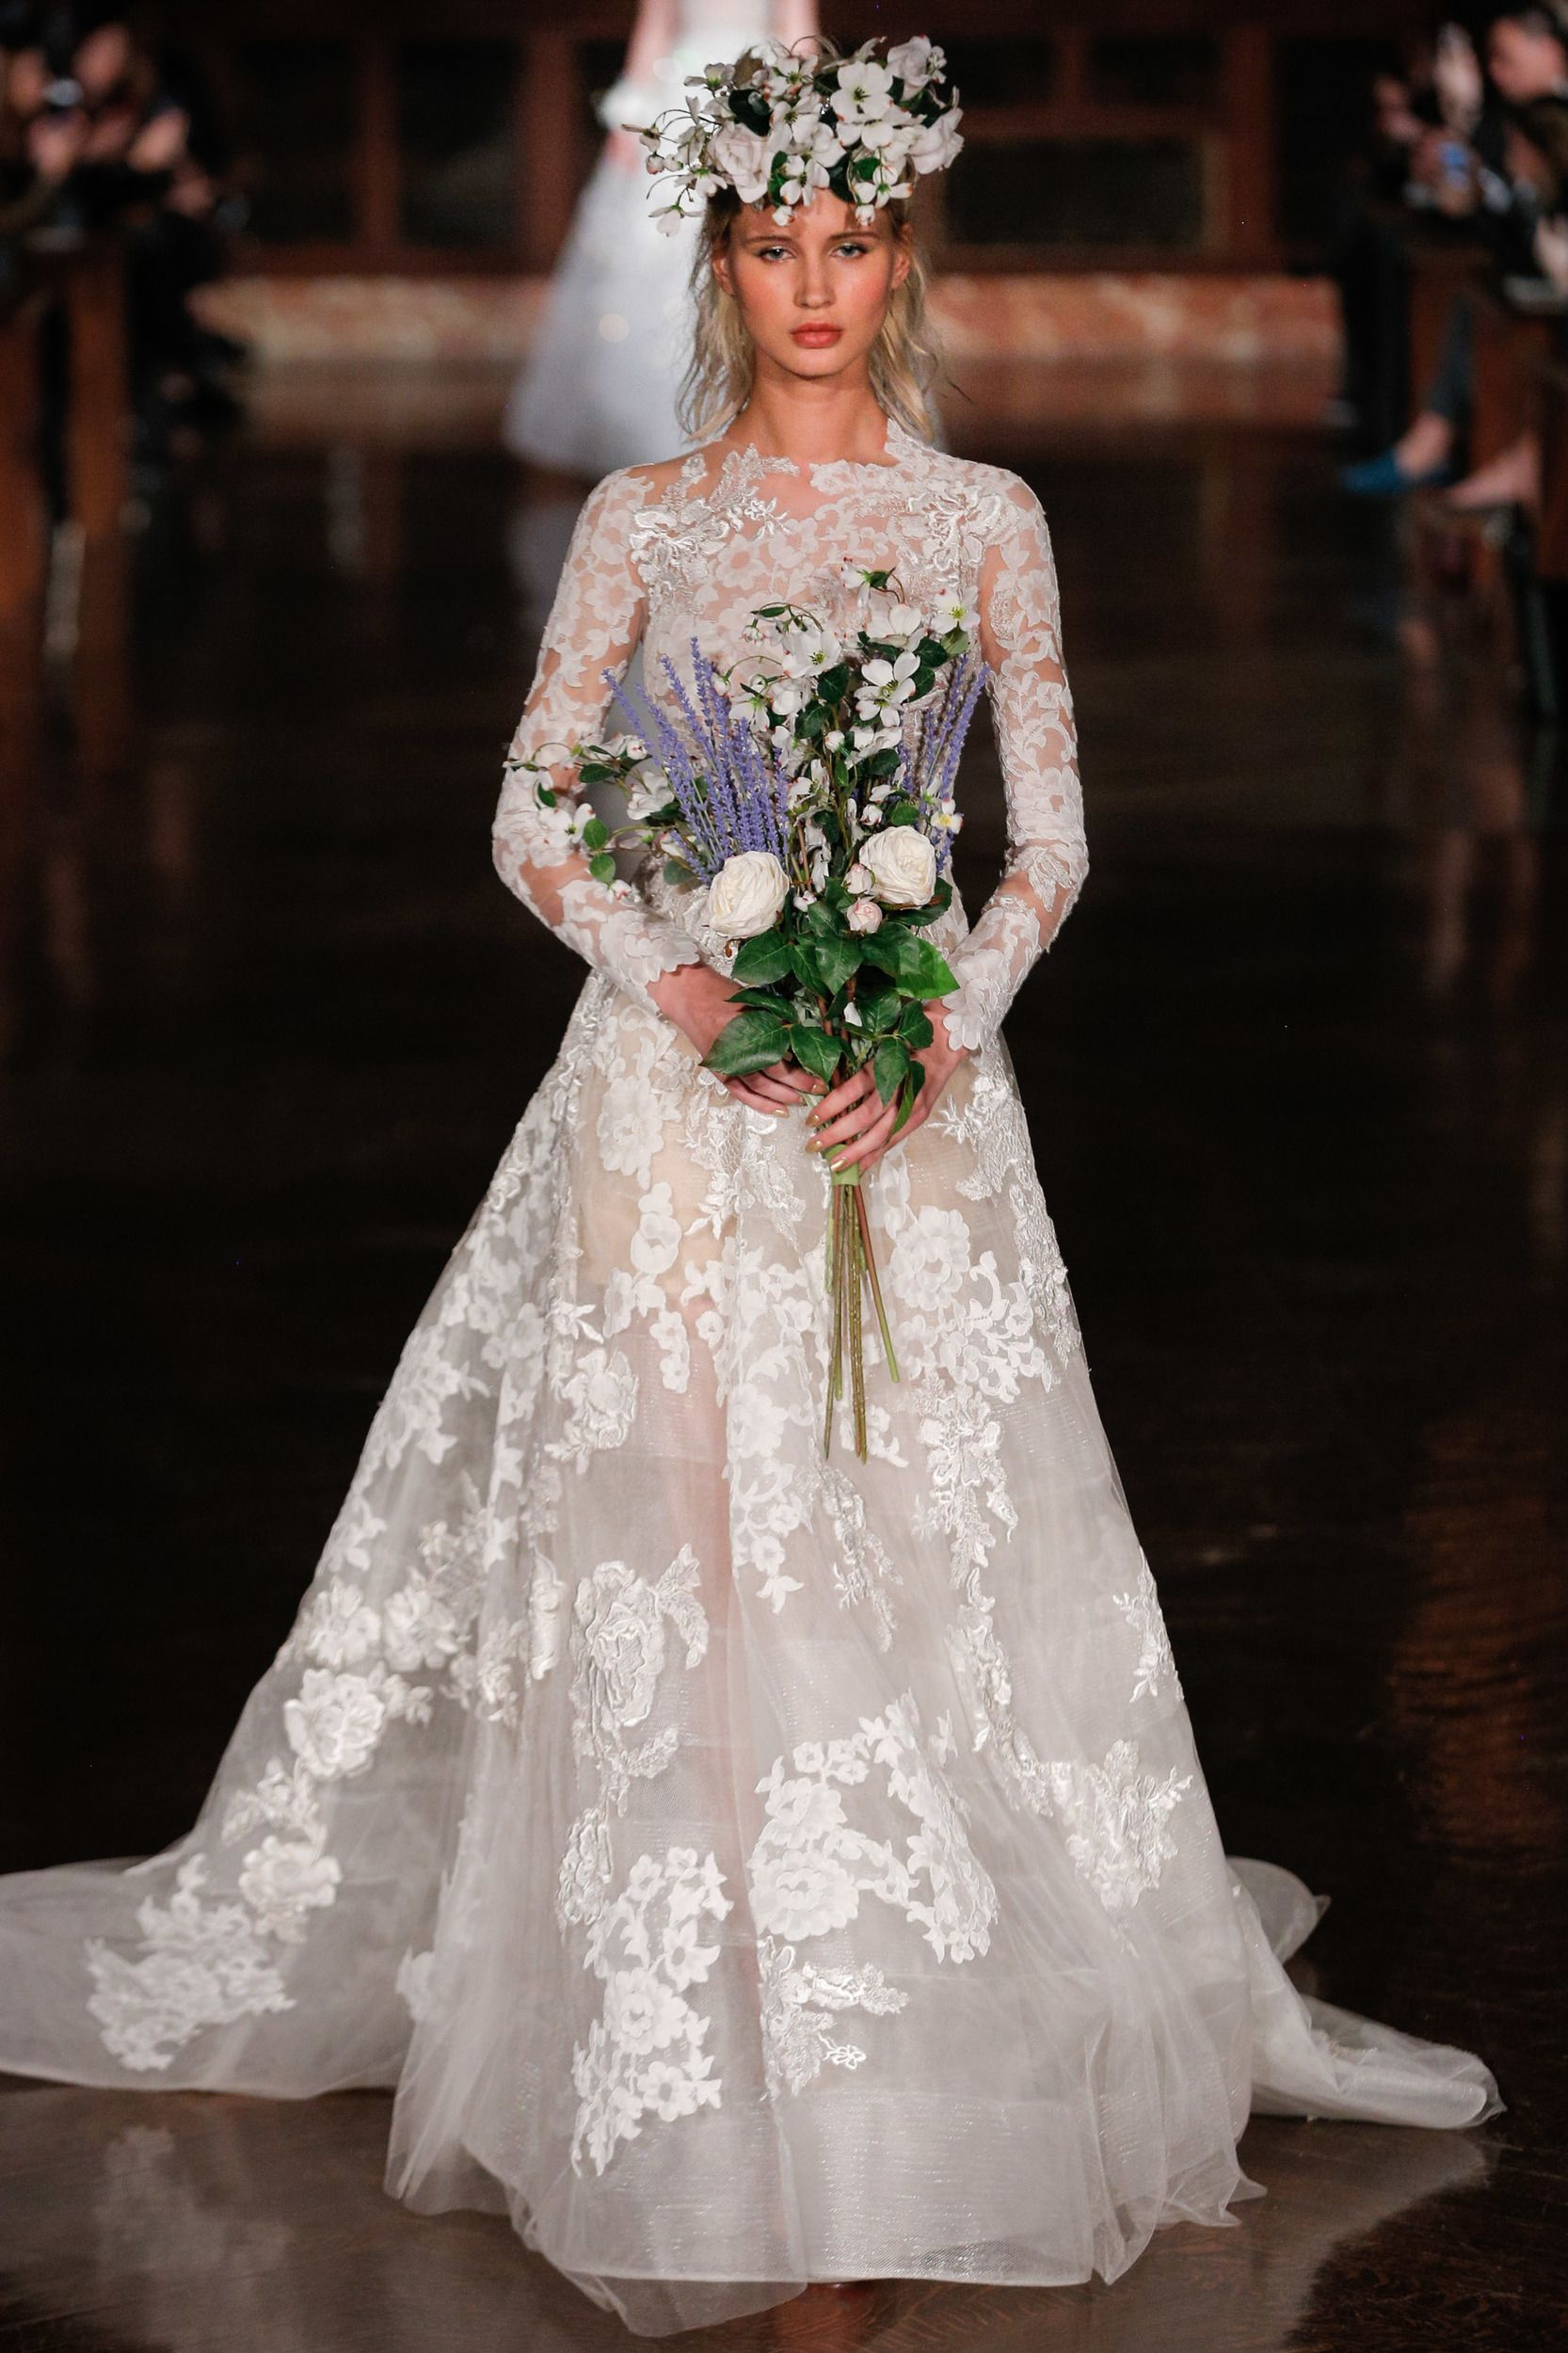 603994fbc998 NEW YORK, NY - APRIL 12: Milena Garbo walks the runway wearing Reem Acra